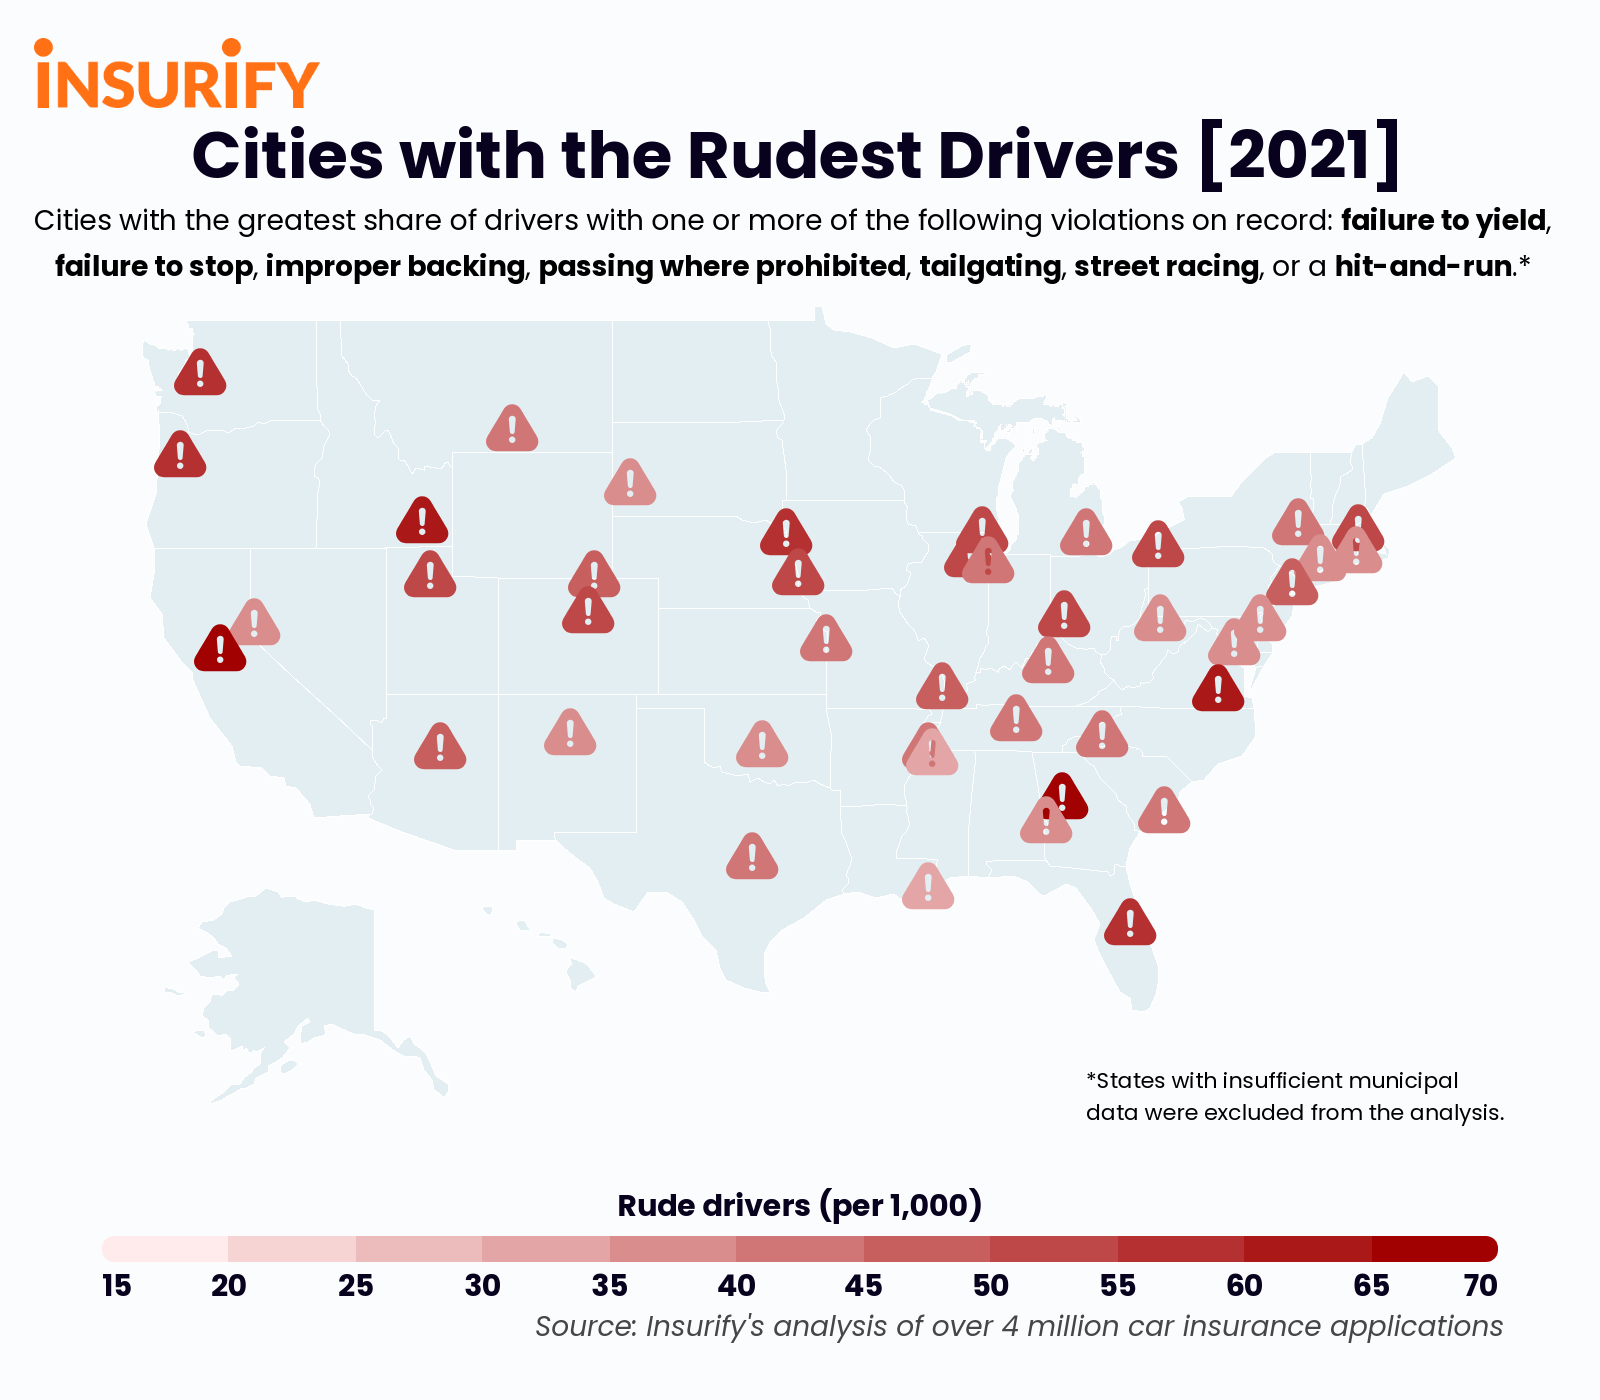 Icon map showing the city in each state with the rudest drivers in 2021.